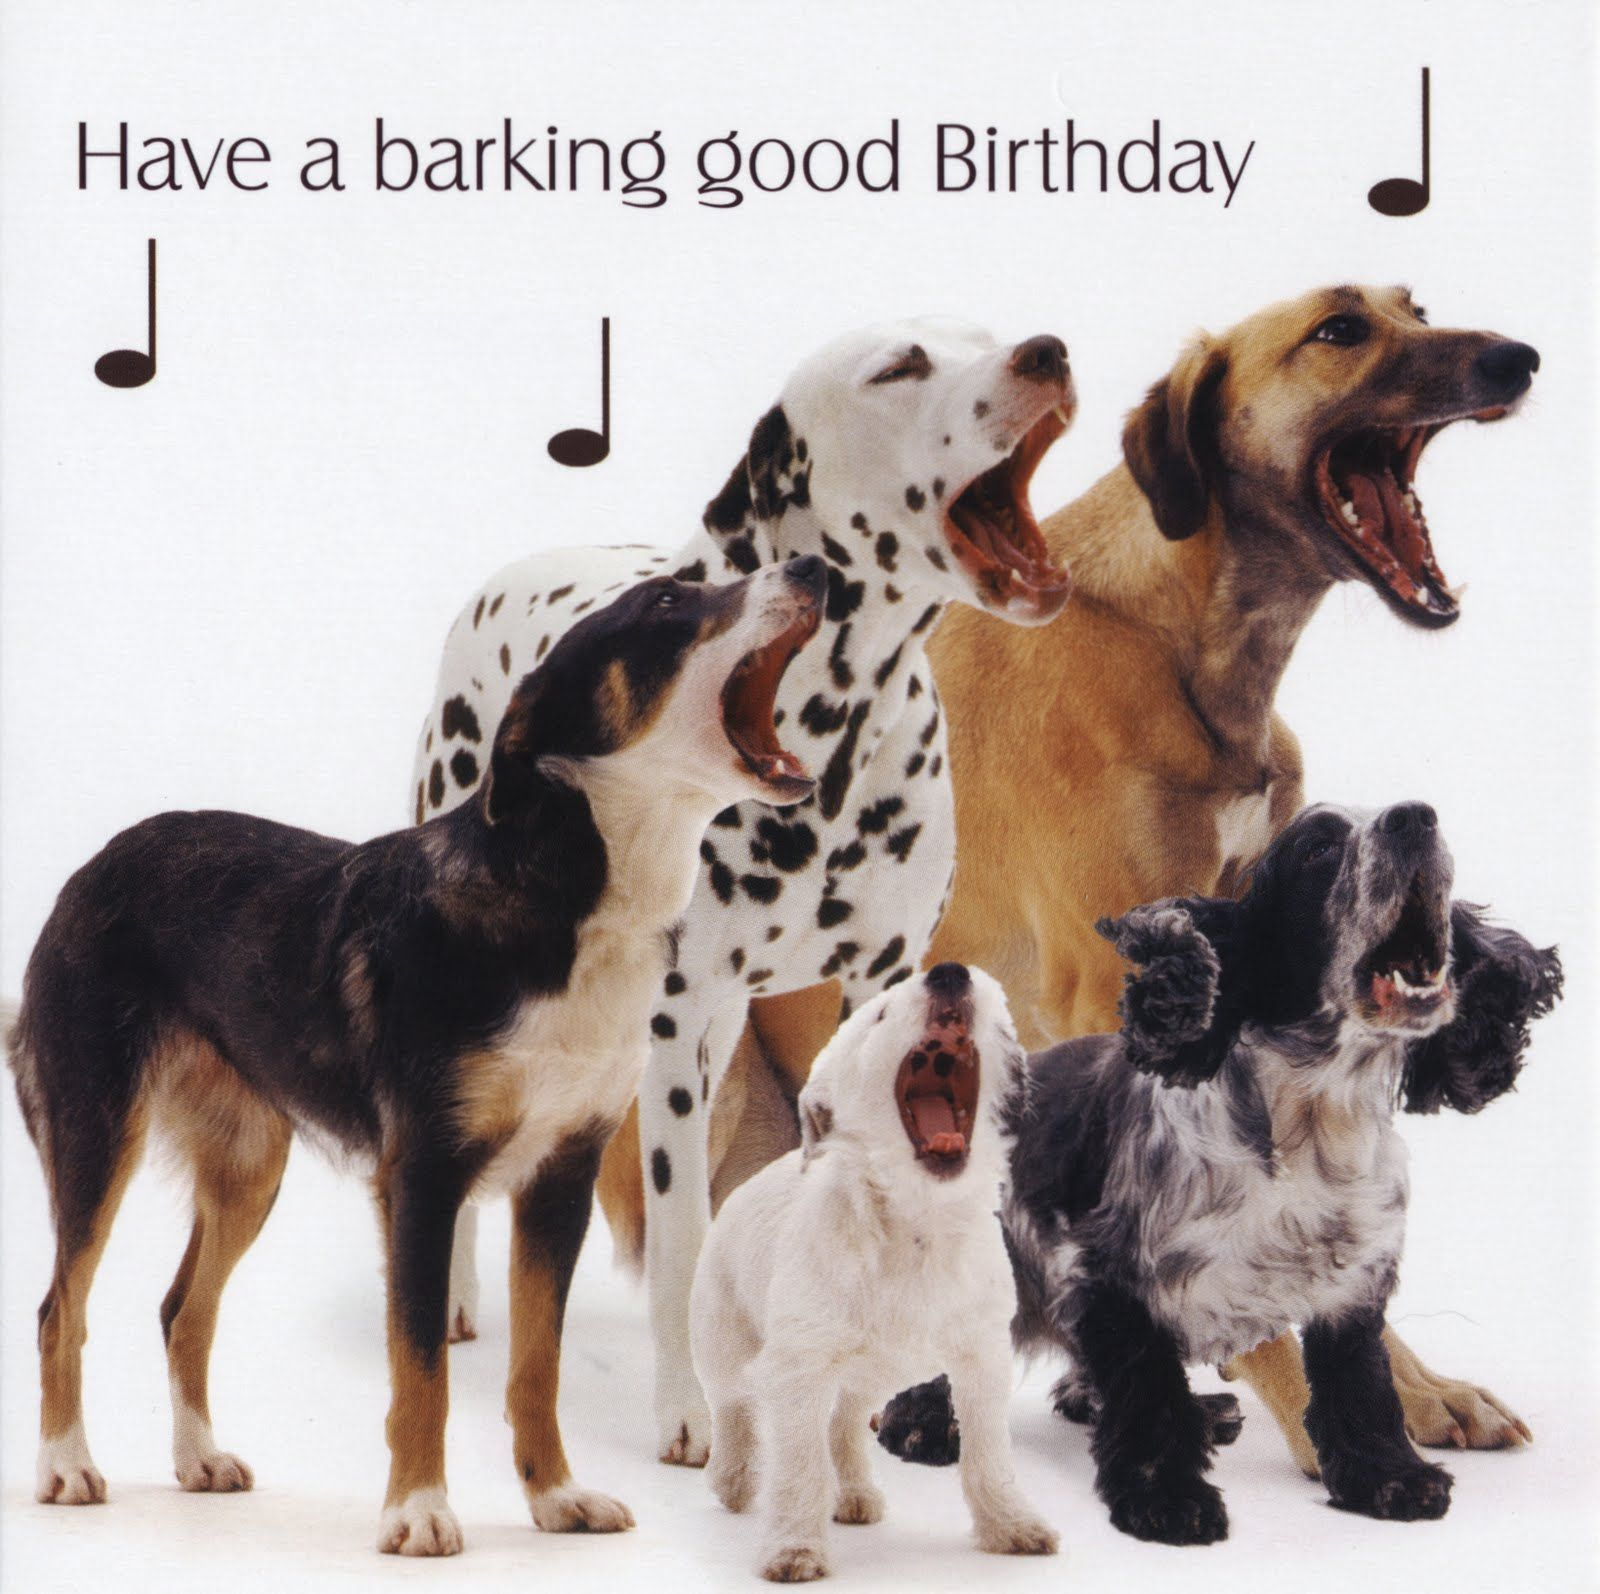 Dog birthday wishes google search doggy birthday wishes dog birthday wishes google search bookmarktalkfo Choice Image